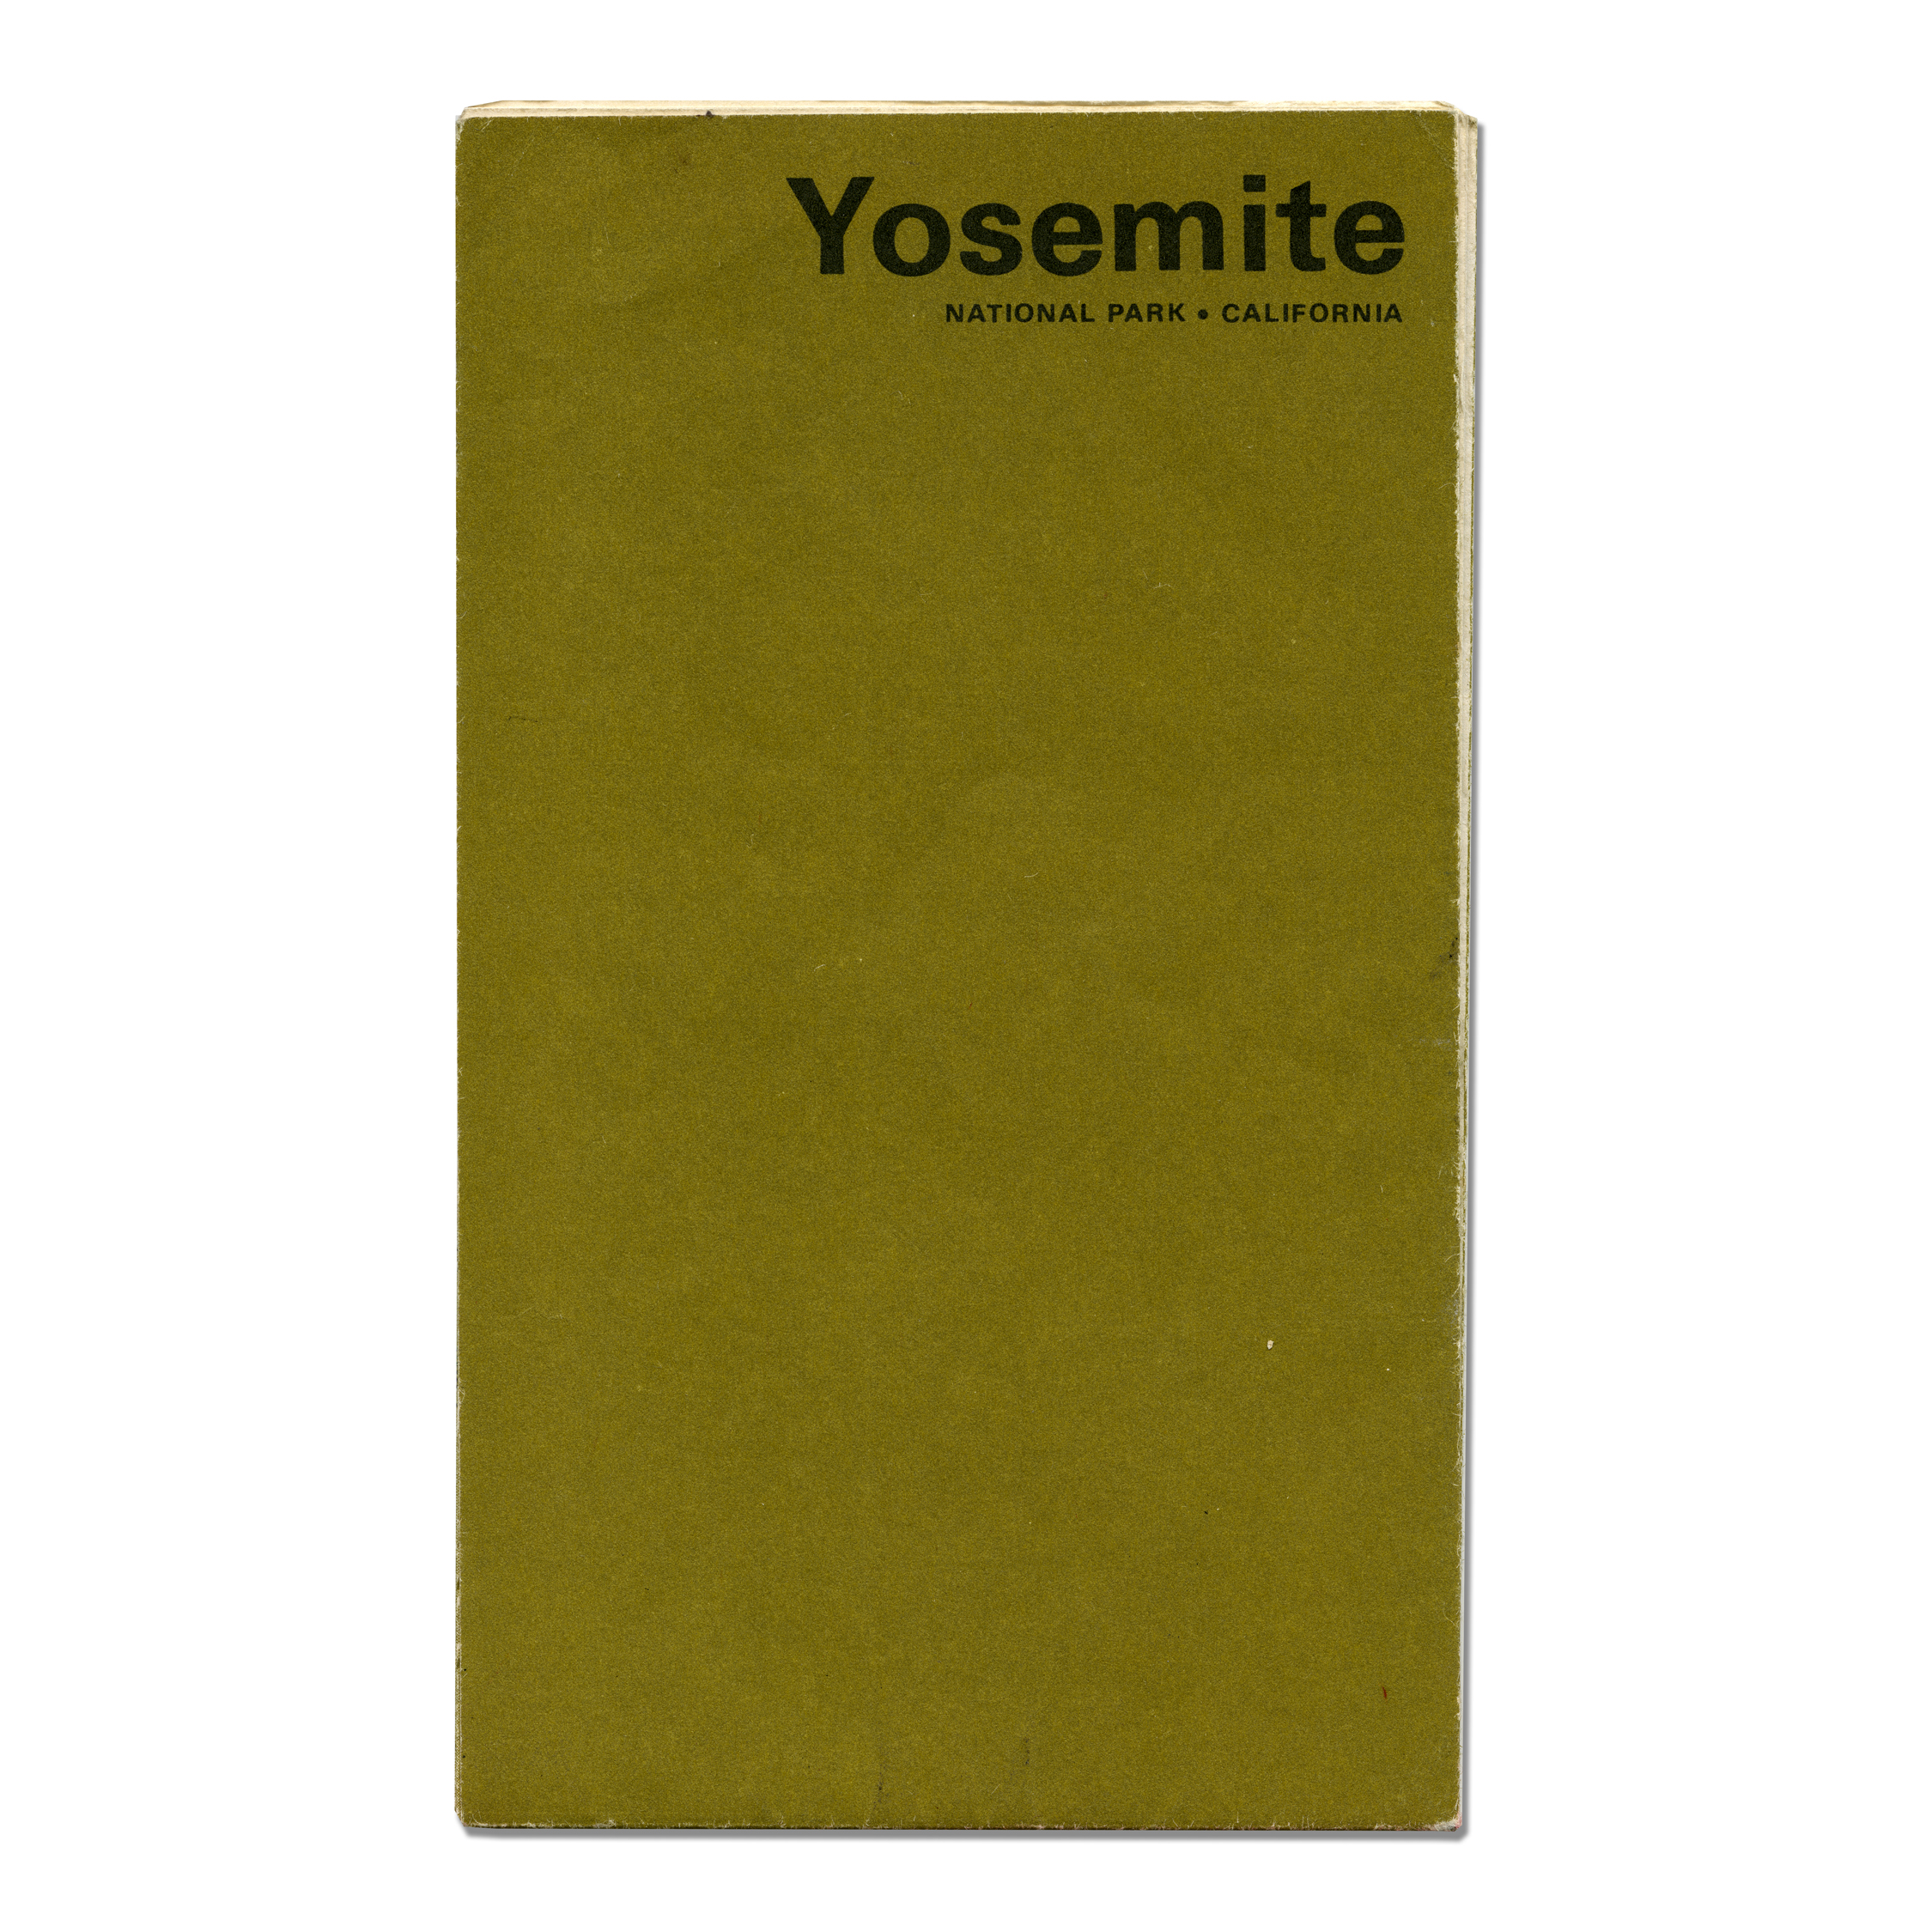 1967_yosemite_national_park_brochure.jpg